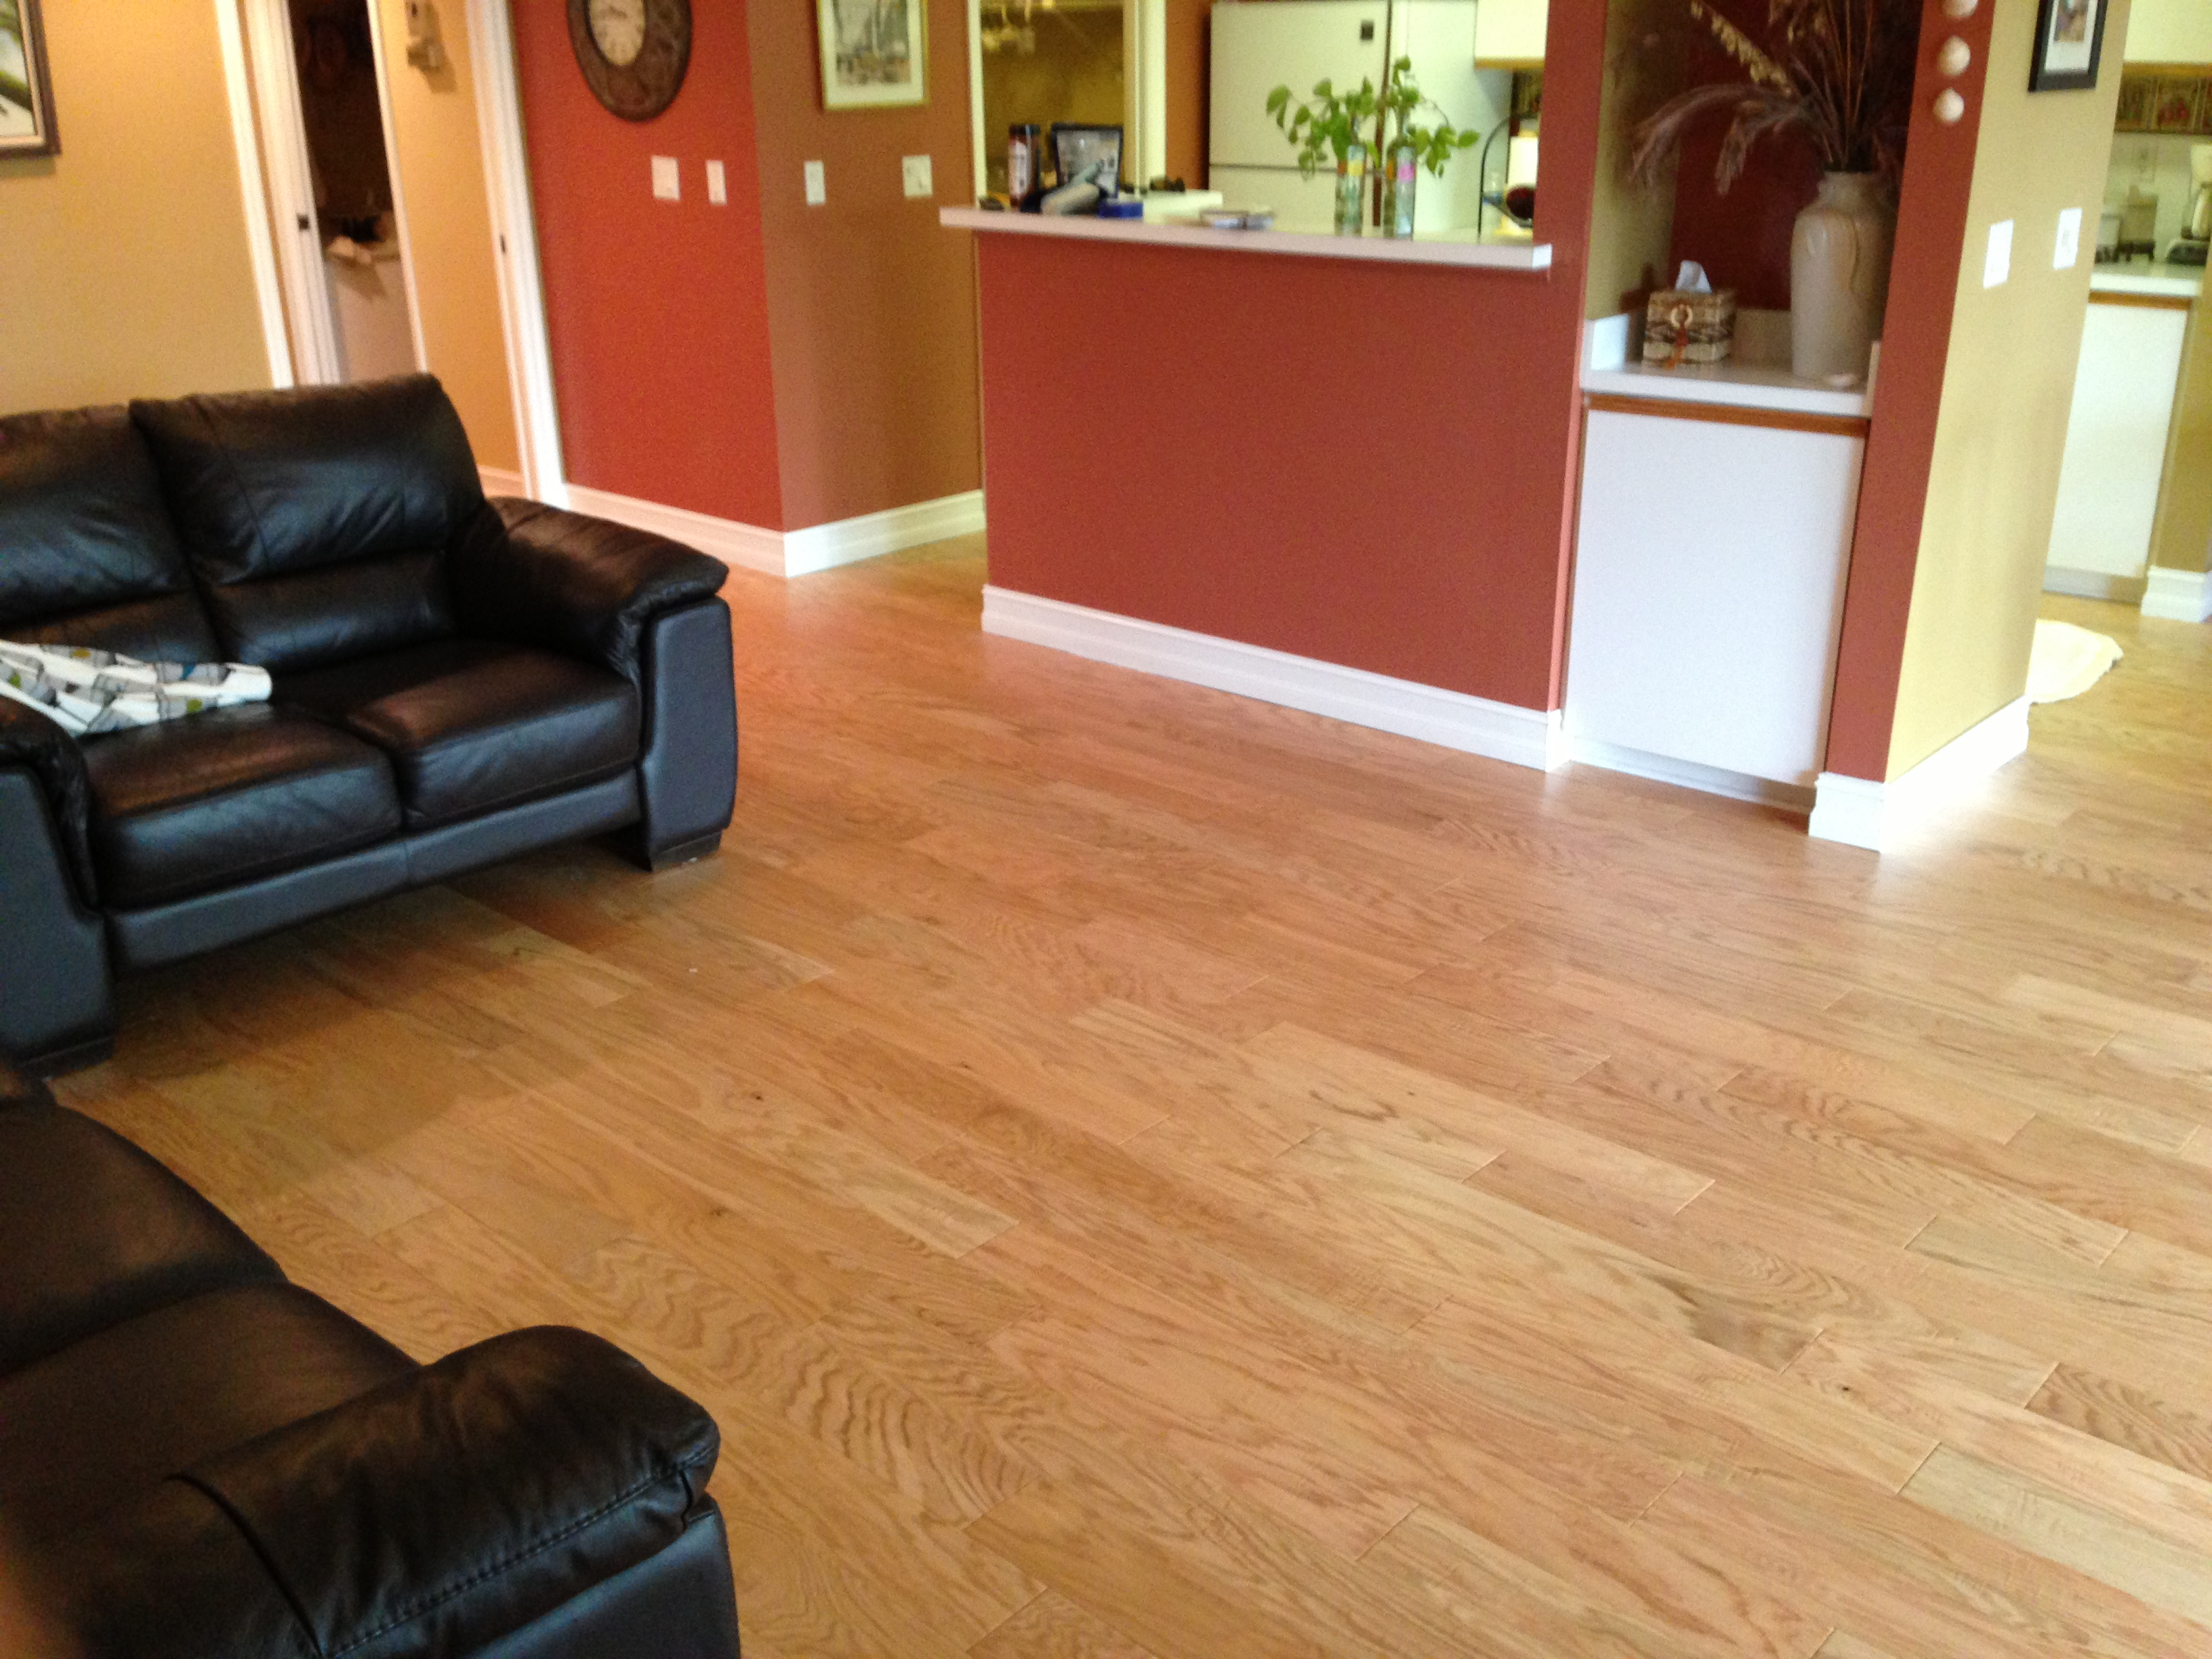 Handscraped red oak flooring installed throughout this condo.